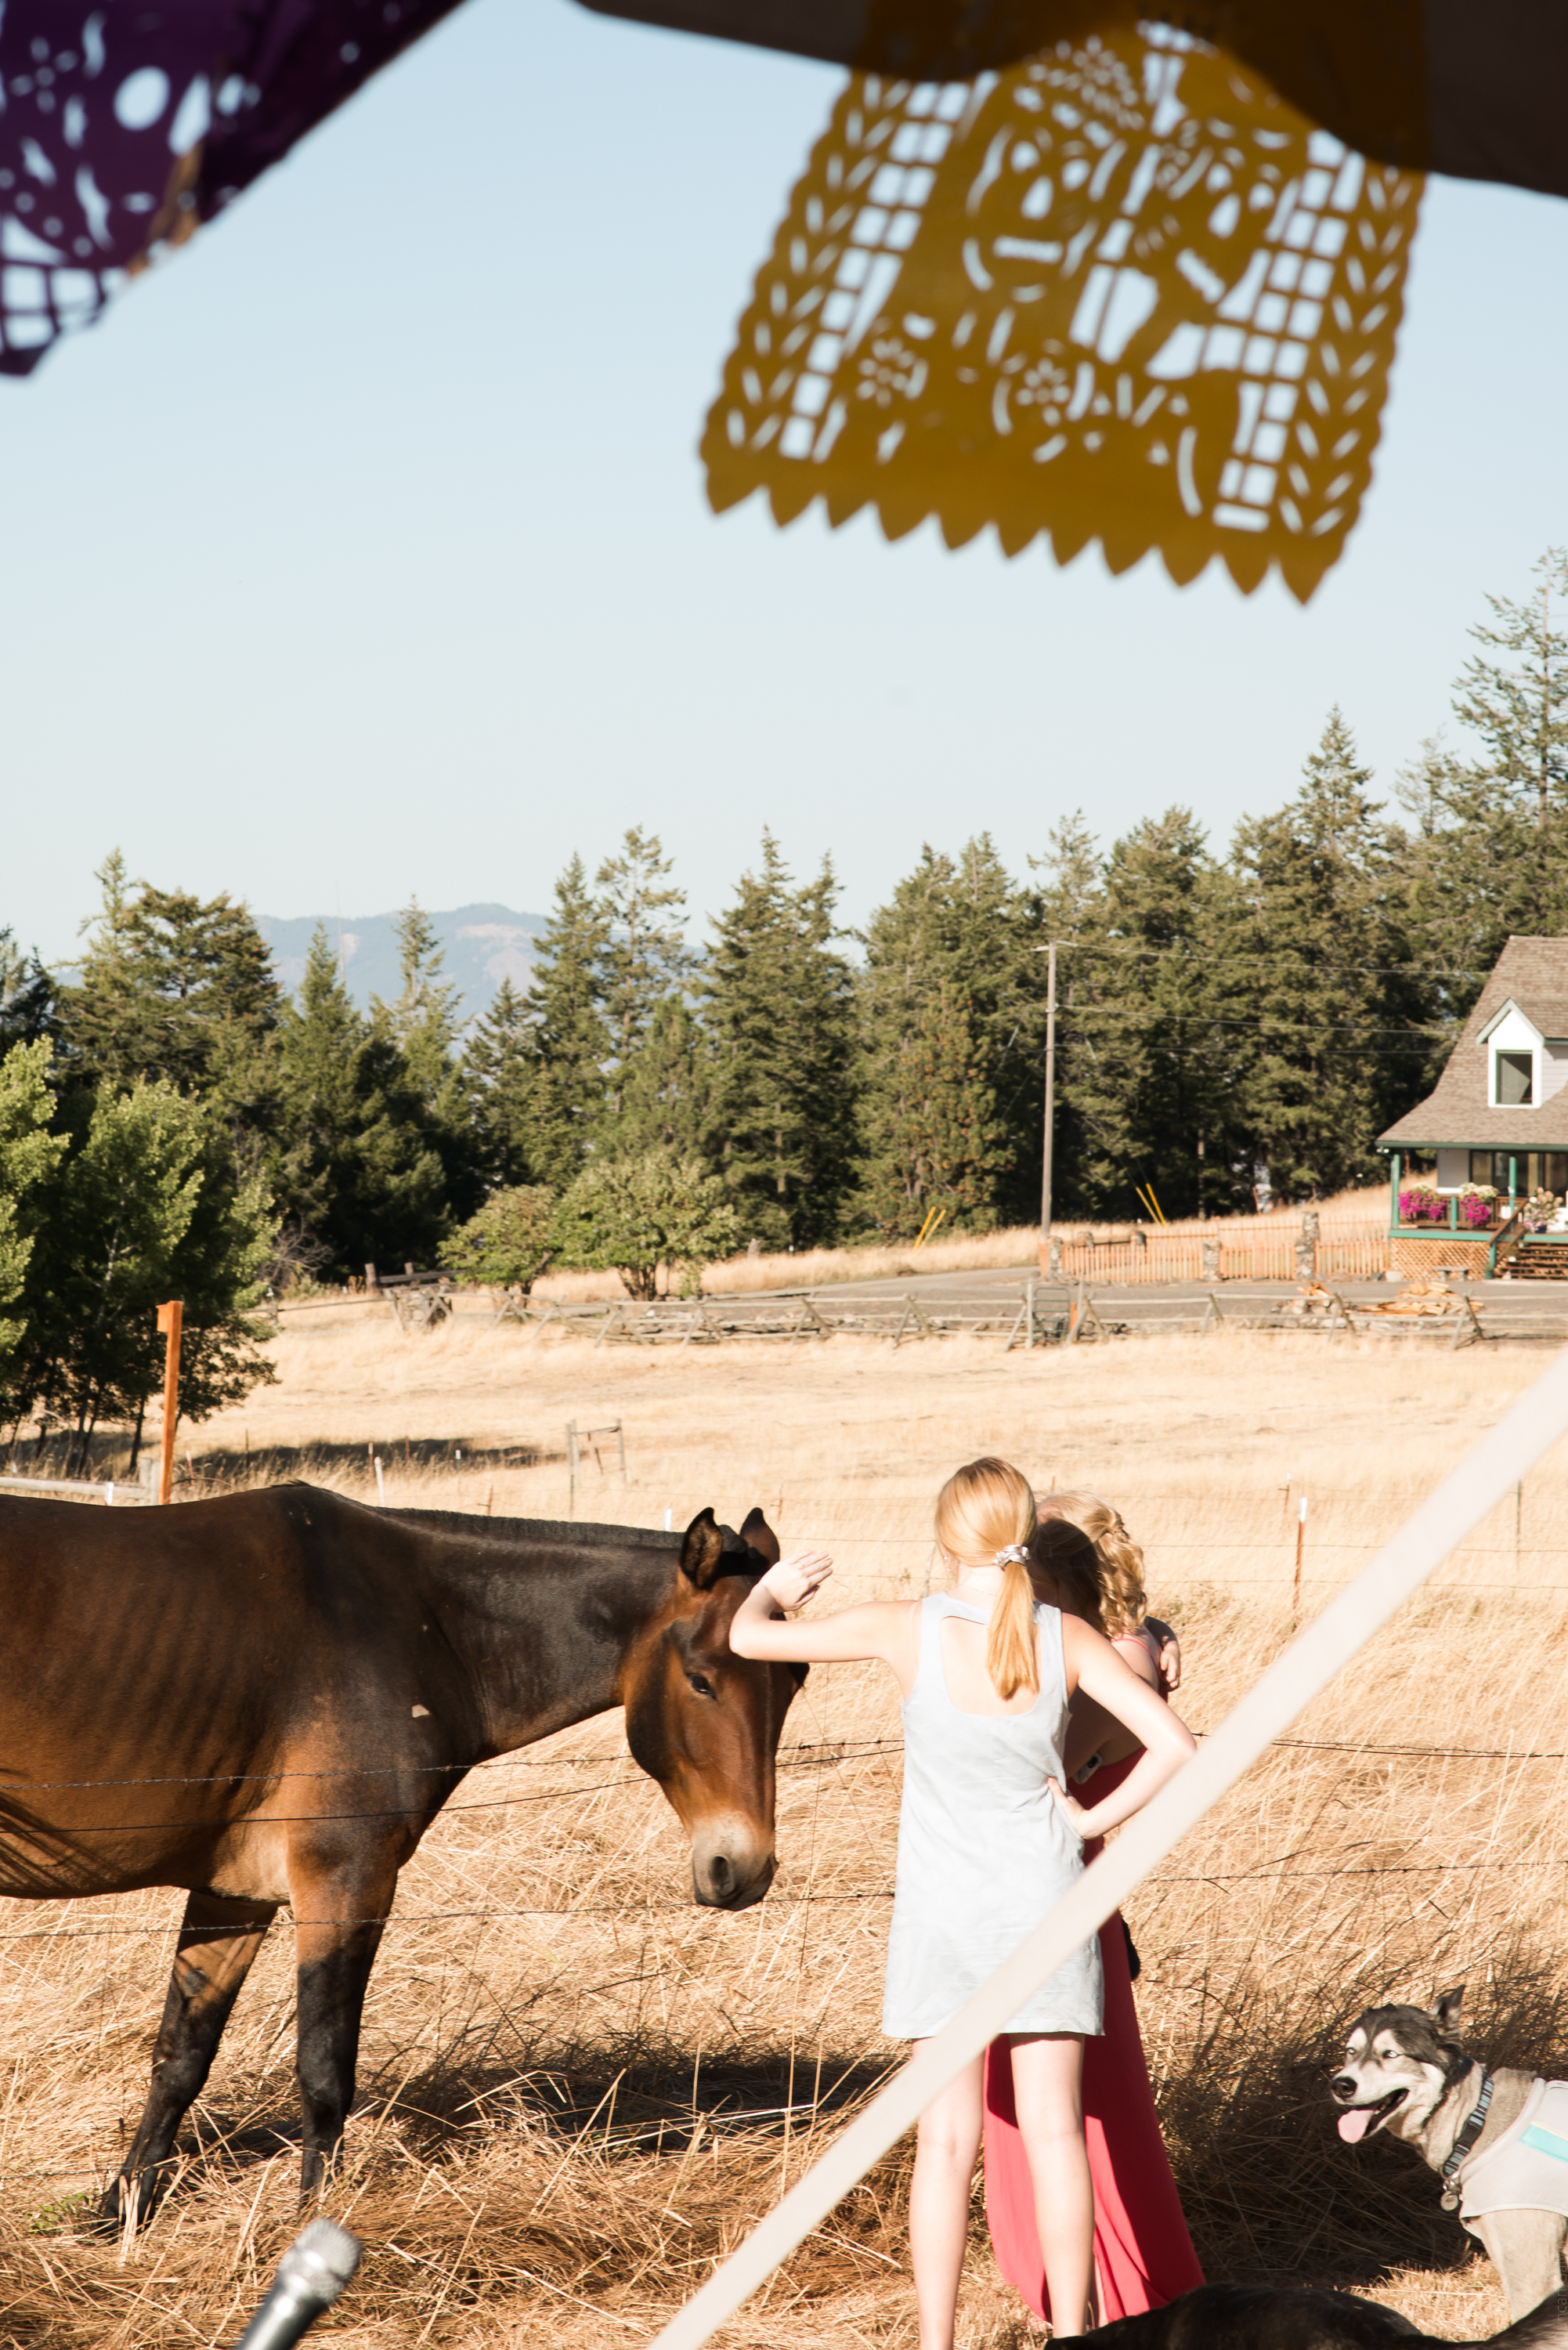 Lana Micah Wedding La Grande Oregon September 2018 Please Credit Talia Jean Galvin (374 of 687).jpg